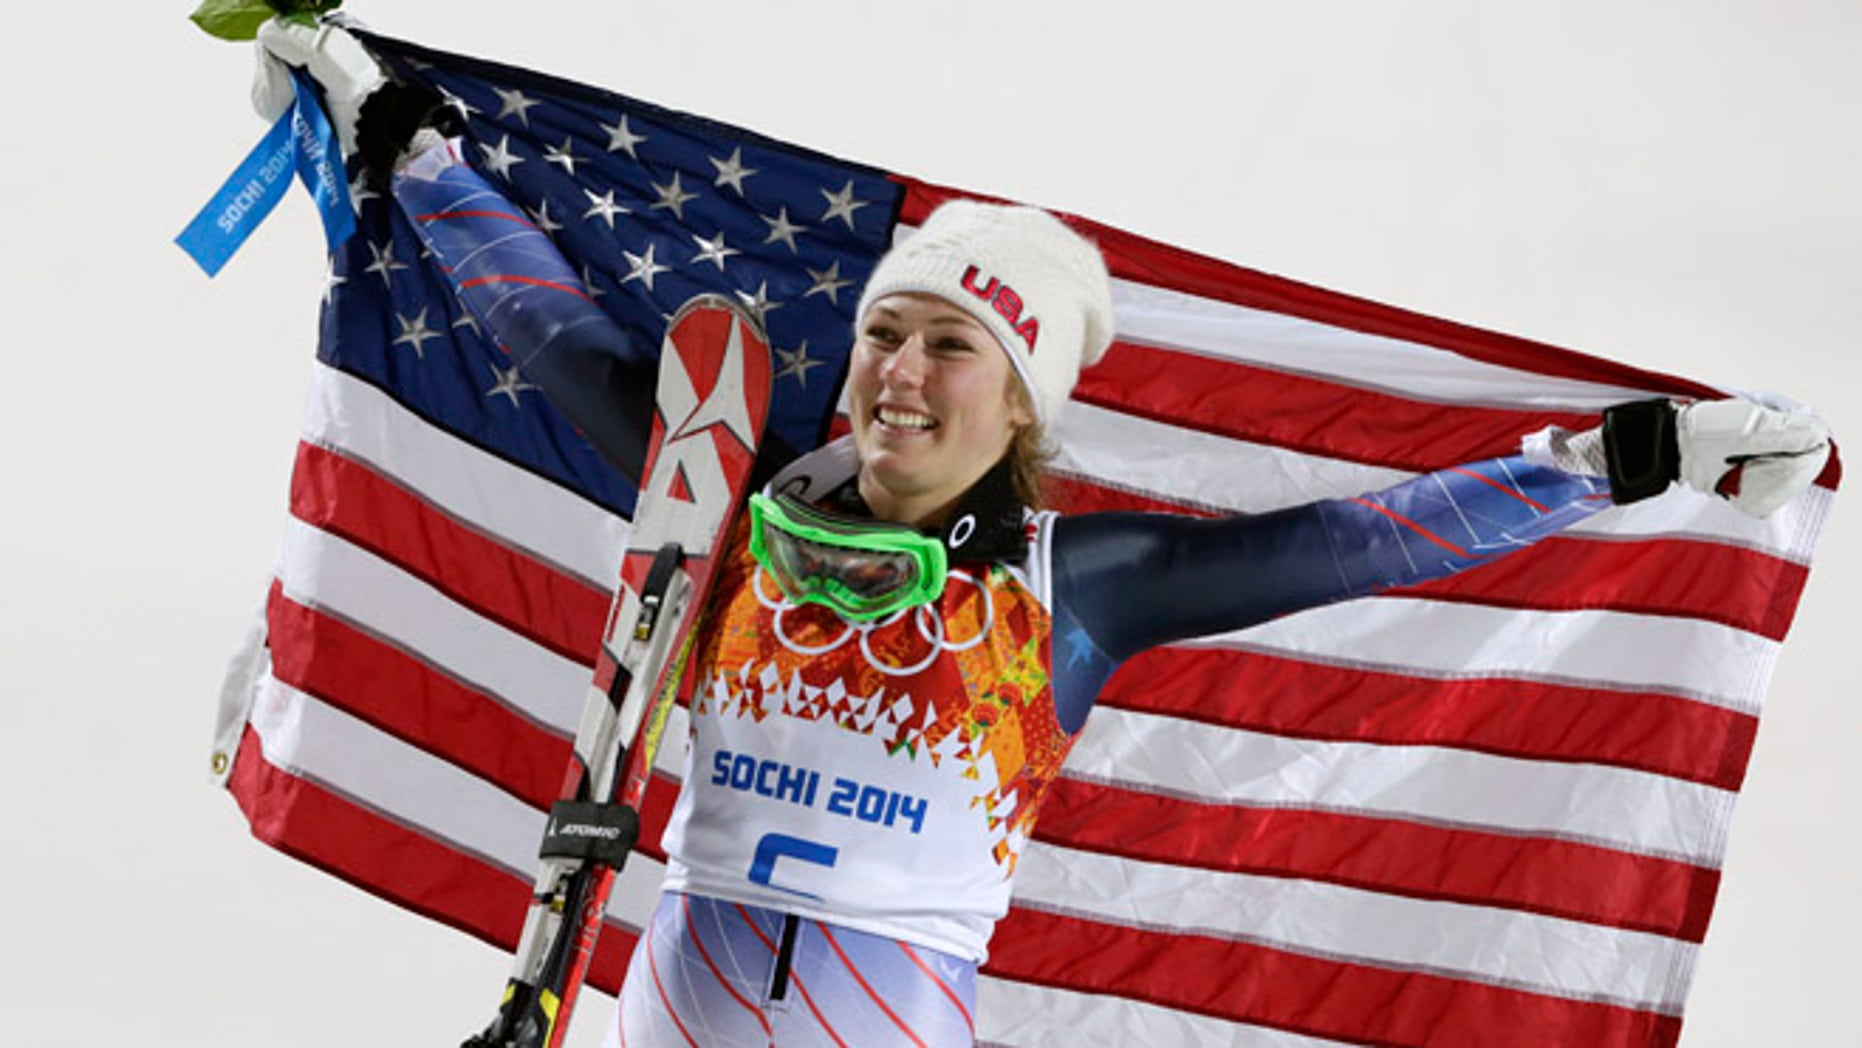 Feb. 21, 2014: Women's slalom gold medal winner Mikaela Shiffrin of the United States poses for photographers with the U.S. flag at the Sochi 2014 Winter Olympics.